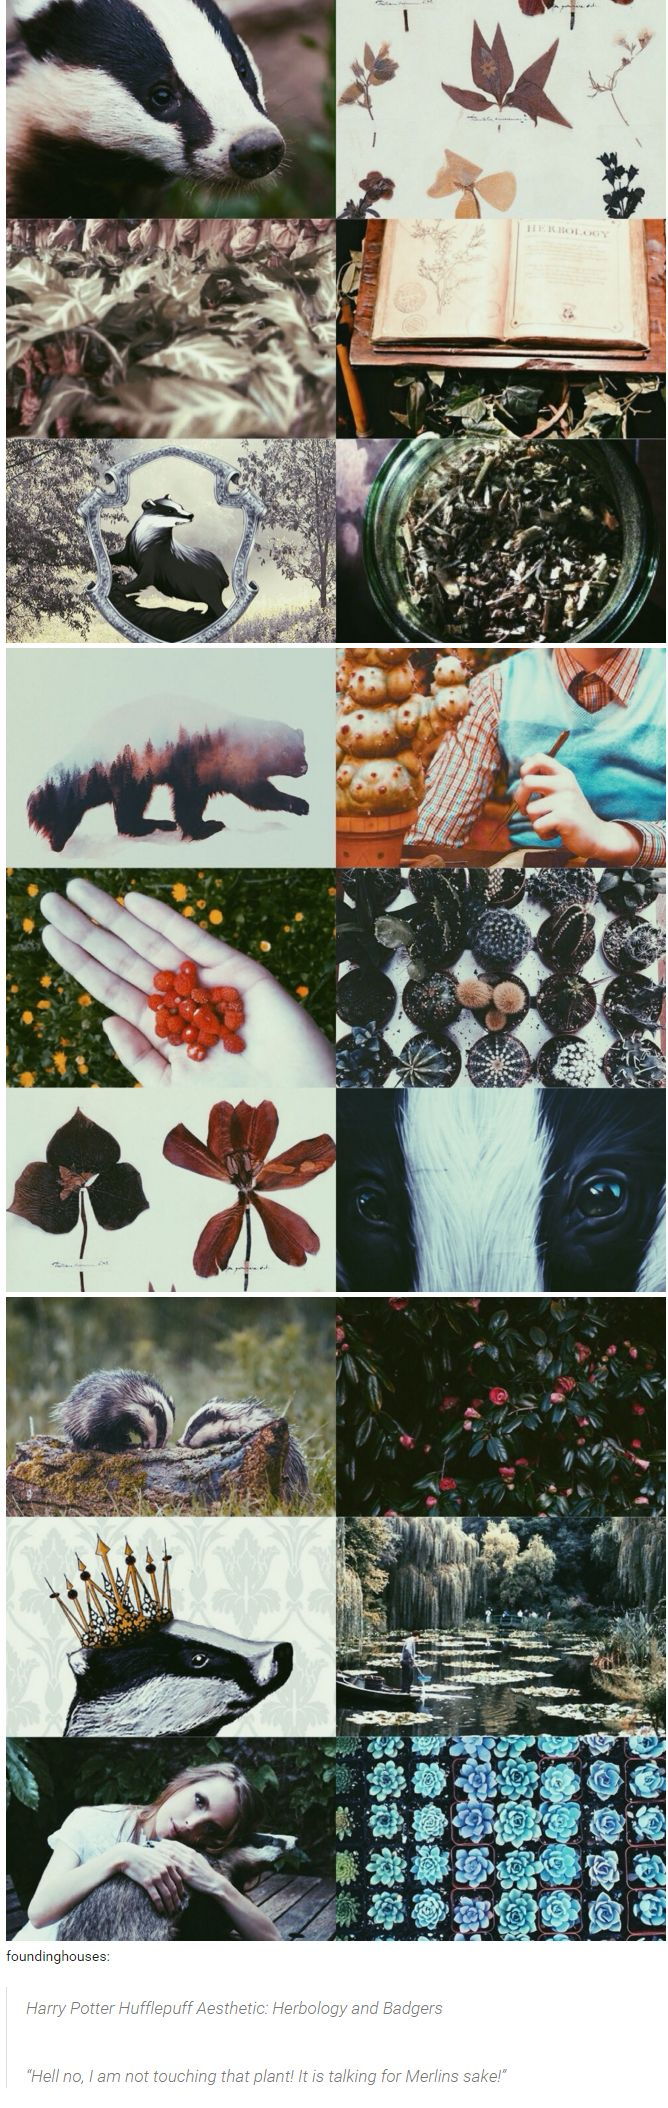 "foundinghouses: Harry Potter Hufflepuff Aesthetic: Herbology and Badgers | ""Hell no, I am not touching that plant! It is talking, for Merlins sake!"""